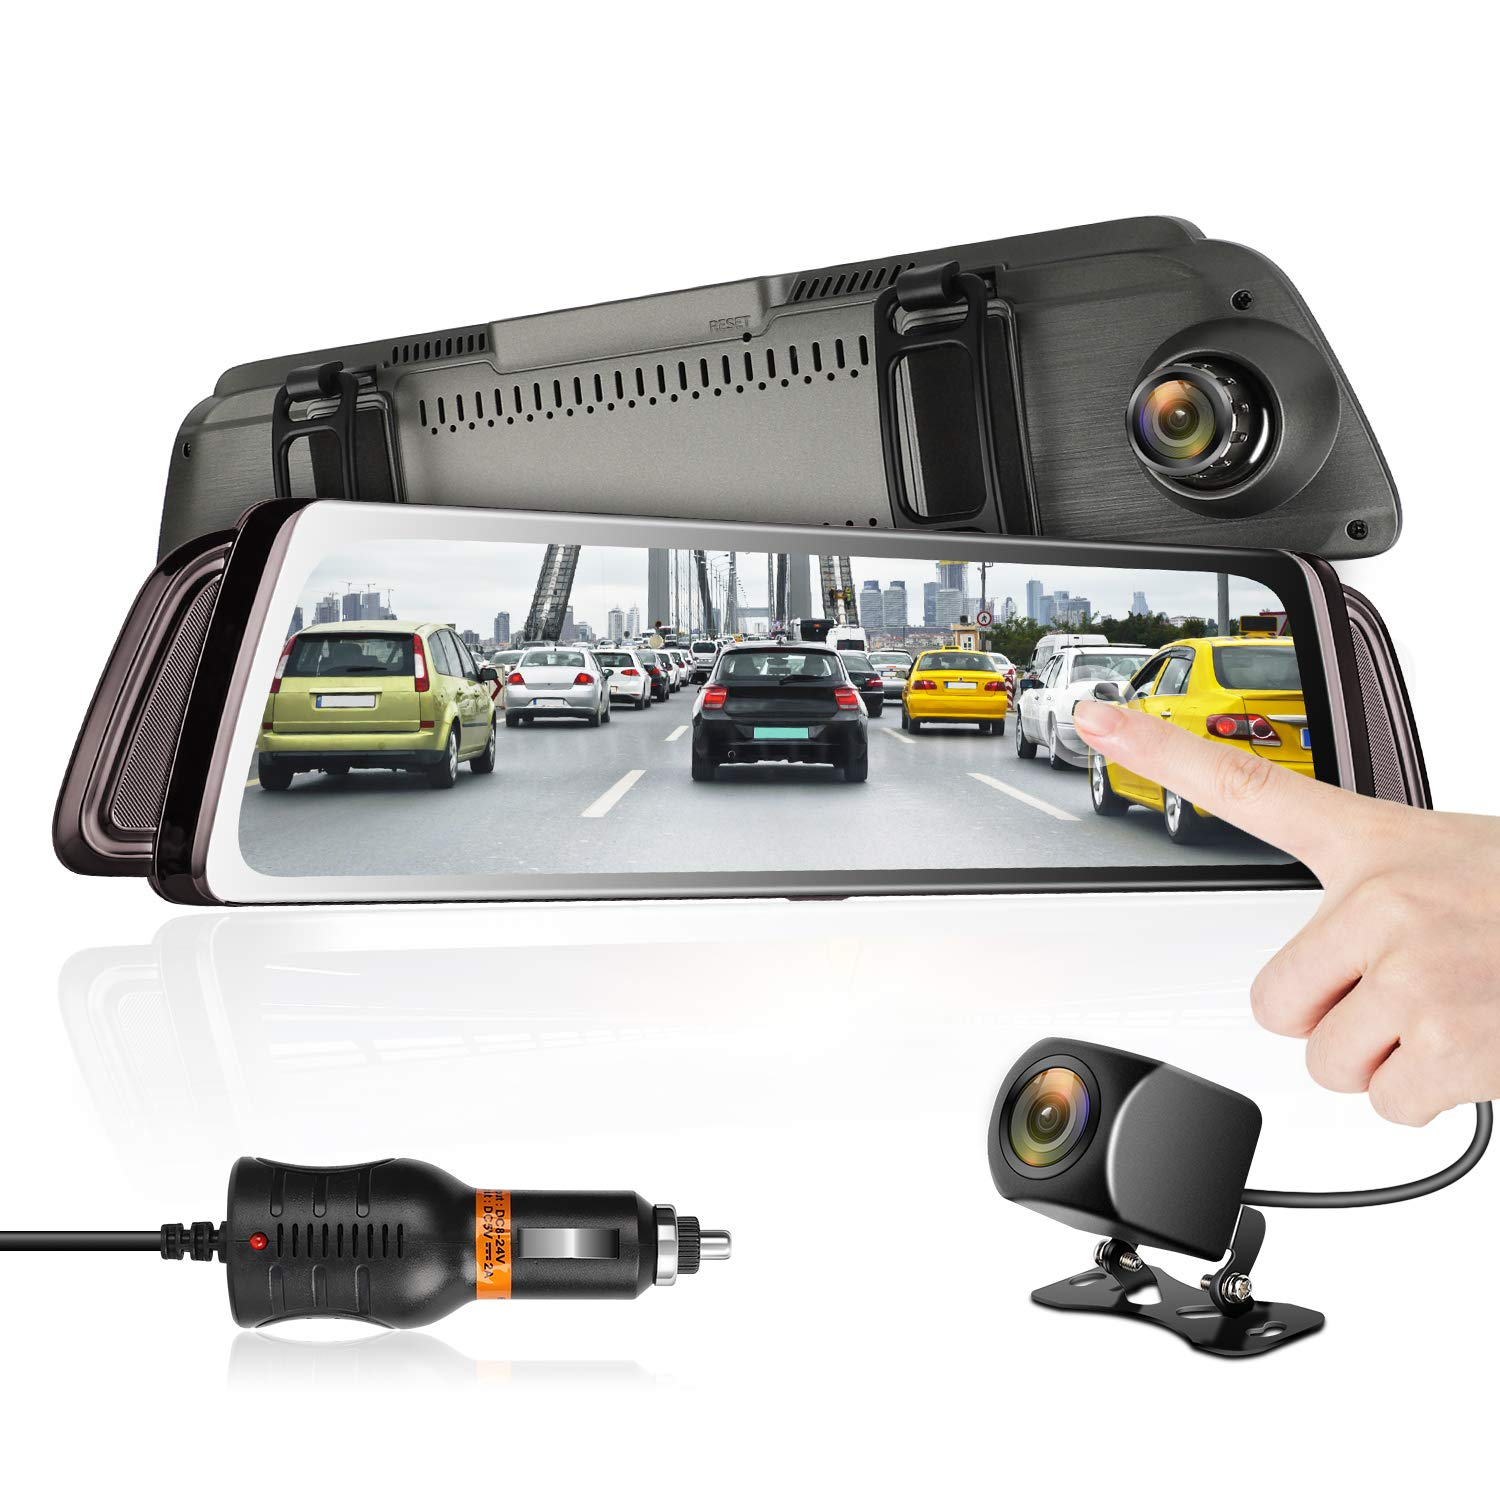 Mirror Dash Cam 9.66'' HD Backup Camera, Dash Cam Front and Rear Dual Lens 1080P Full Touch Screen Video Streaming Rear View Mirror Camera with Waterproof, G-Sensor, 24h Parking Monitor by DUTERI D